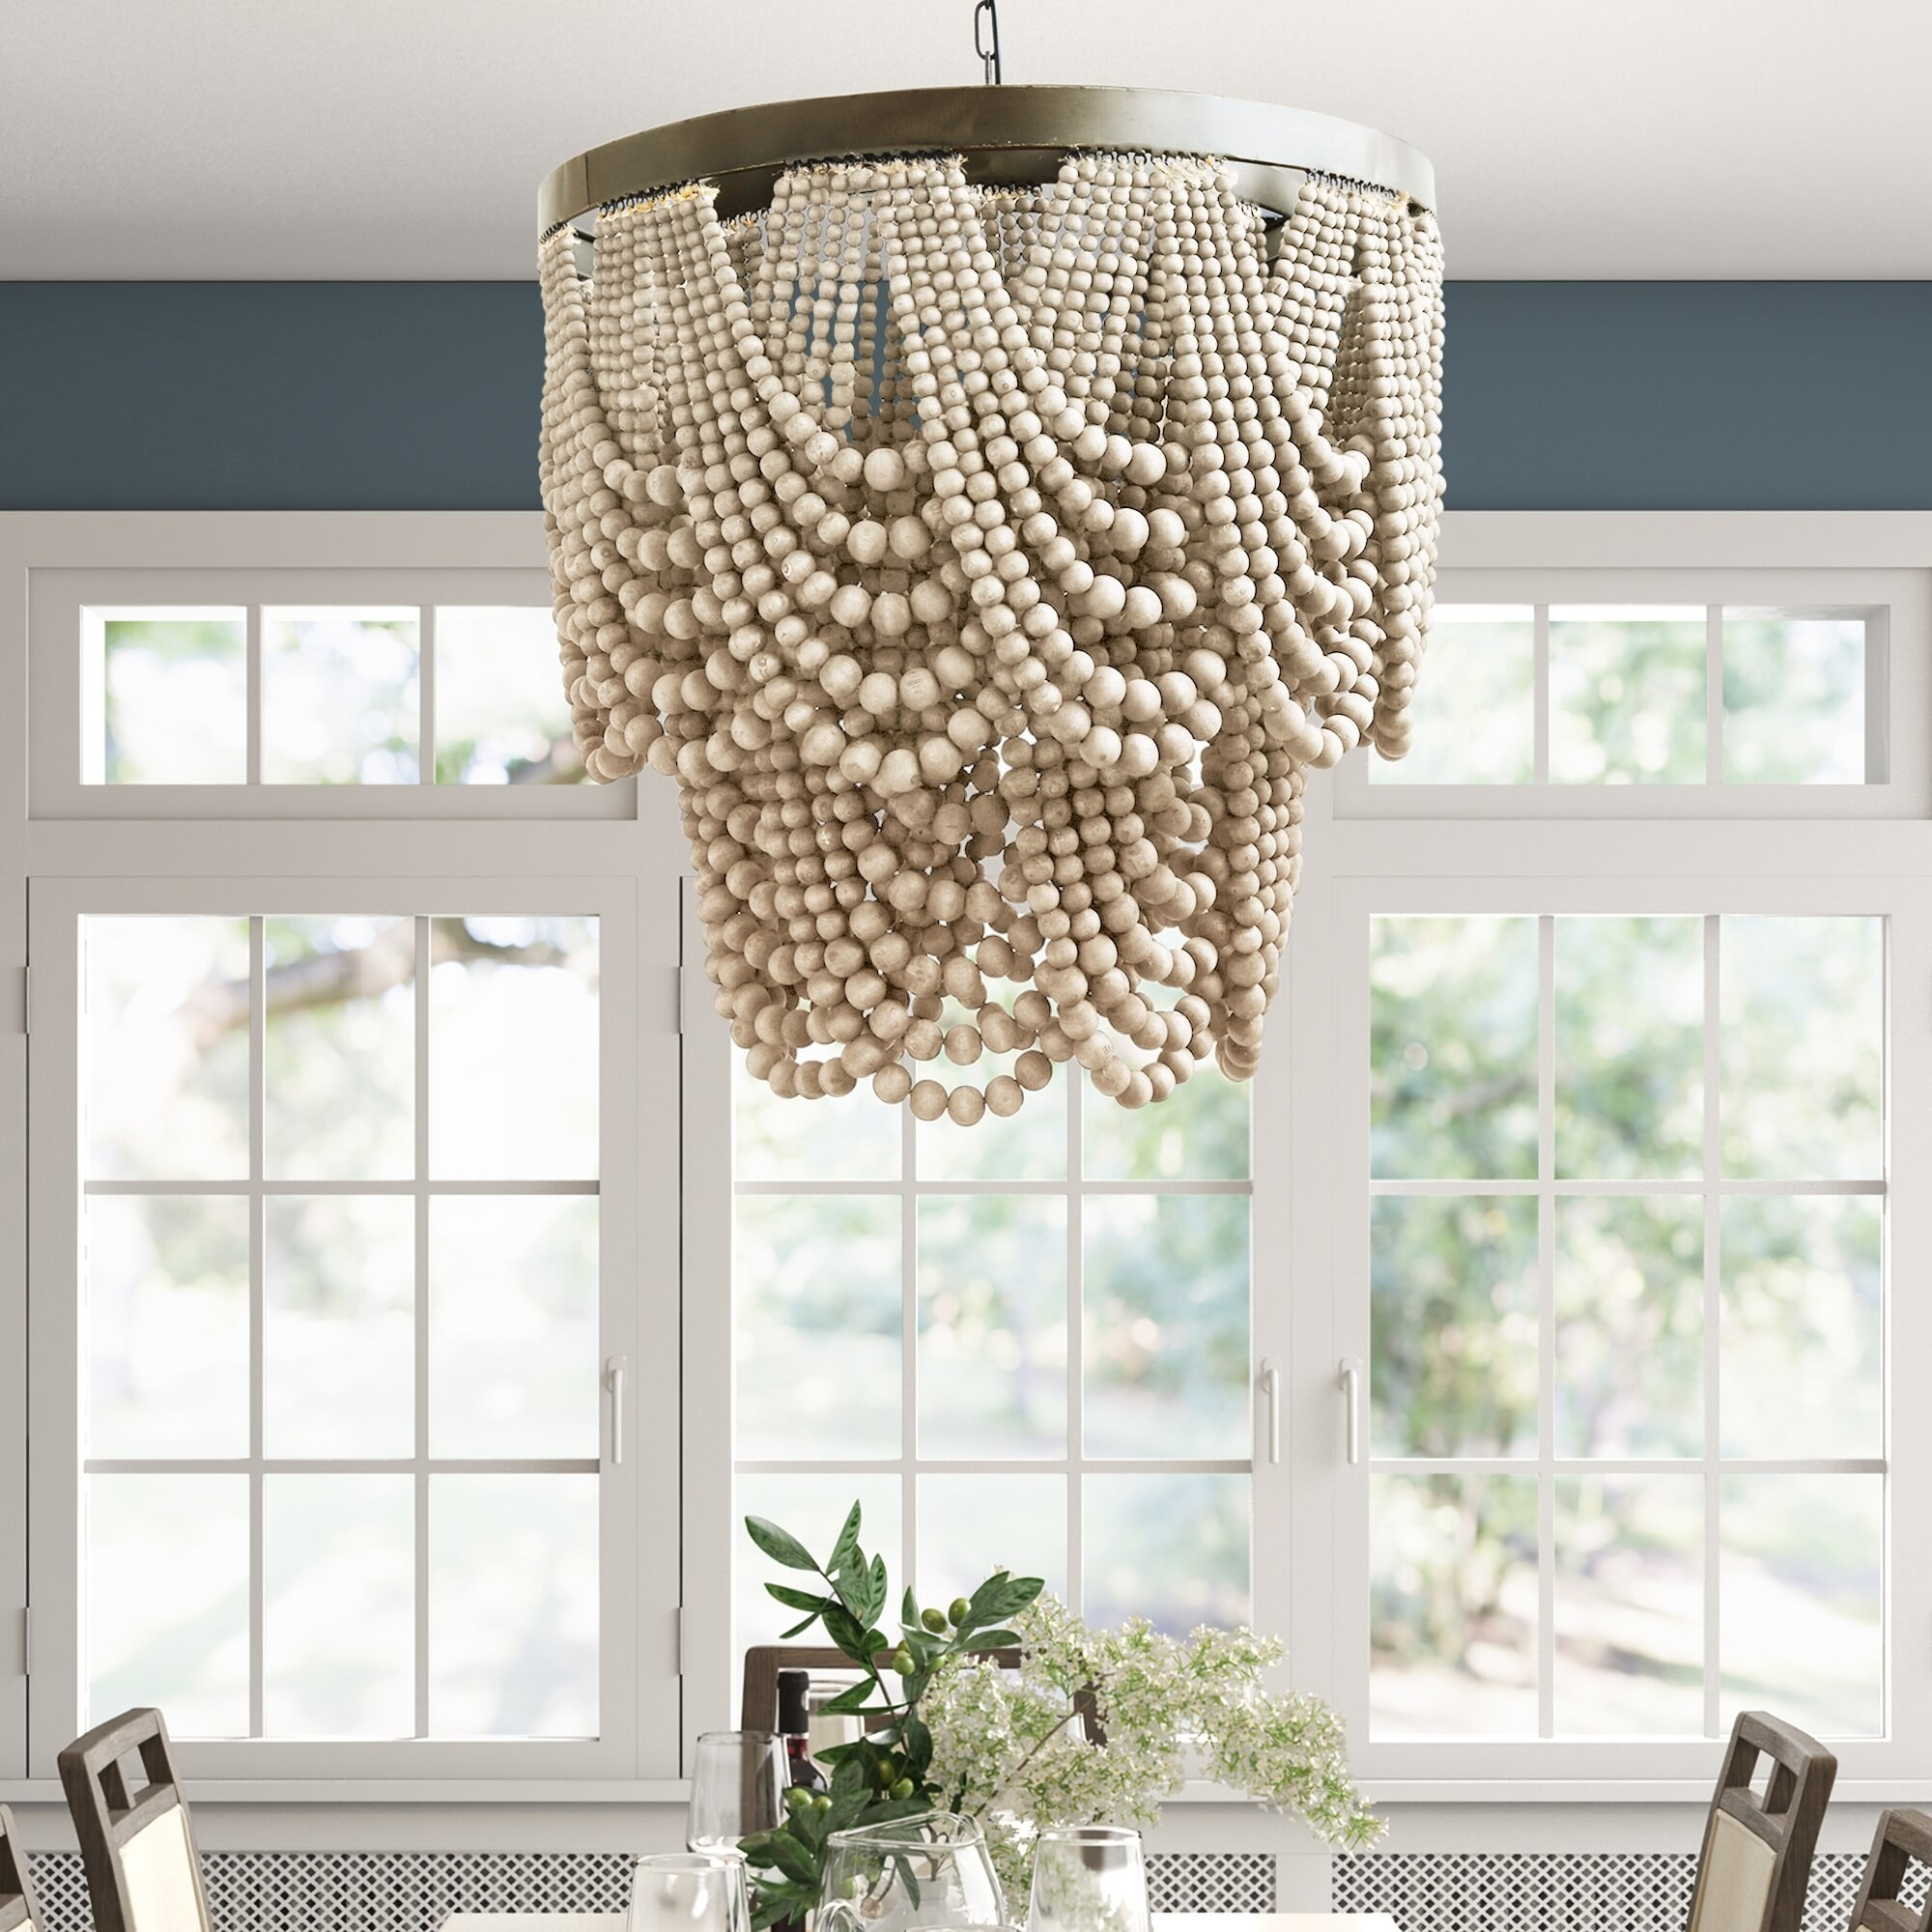 White beaded chandelier hanging on a ceiling above a dining table